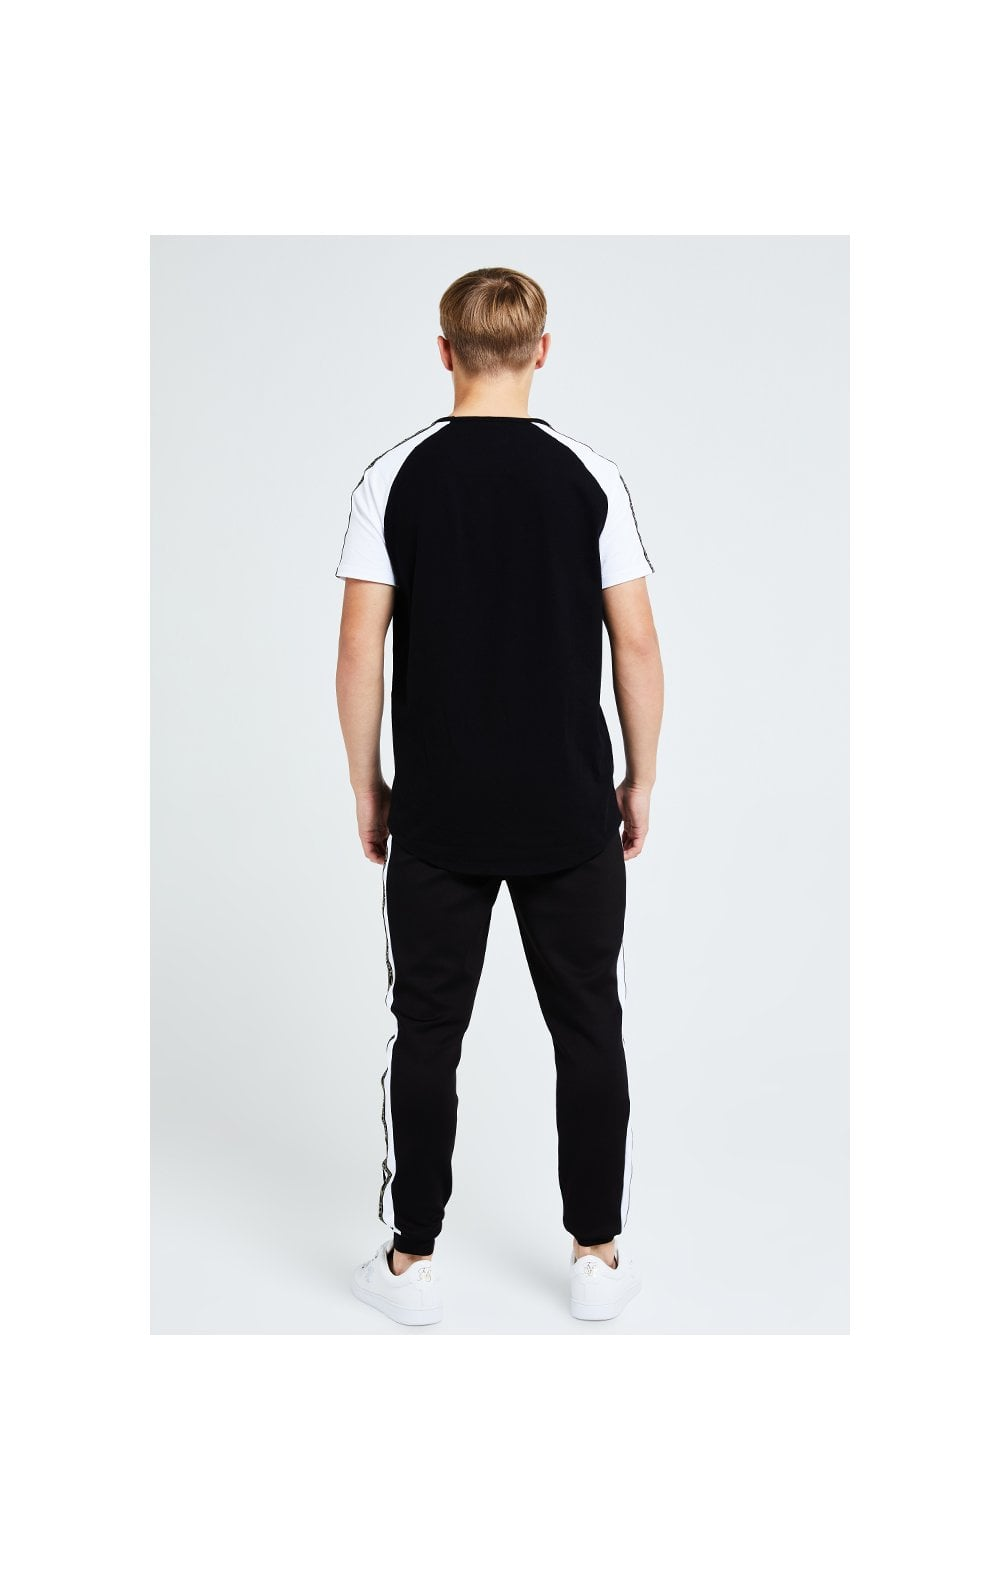 Illusive London Diverge Jogger - Black Gold & White (5)